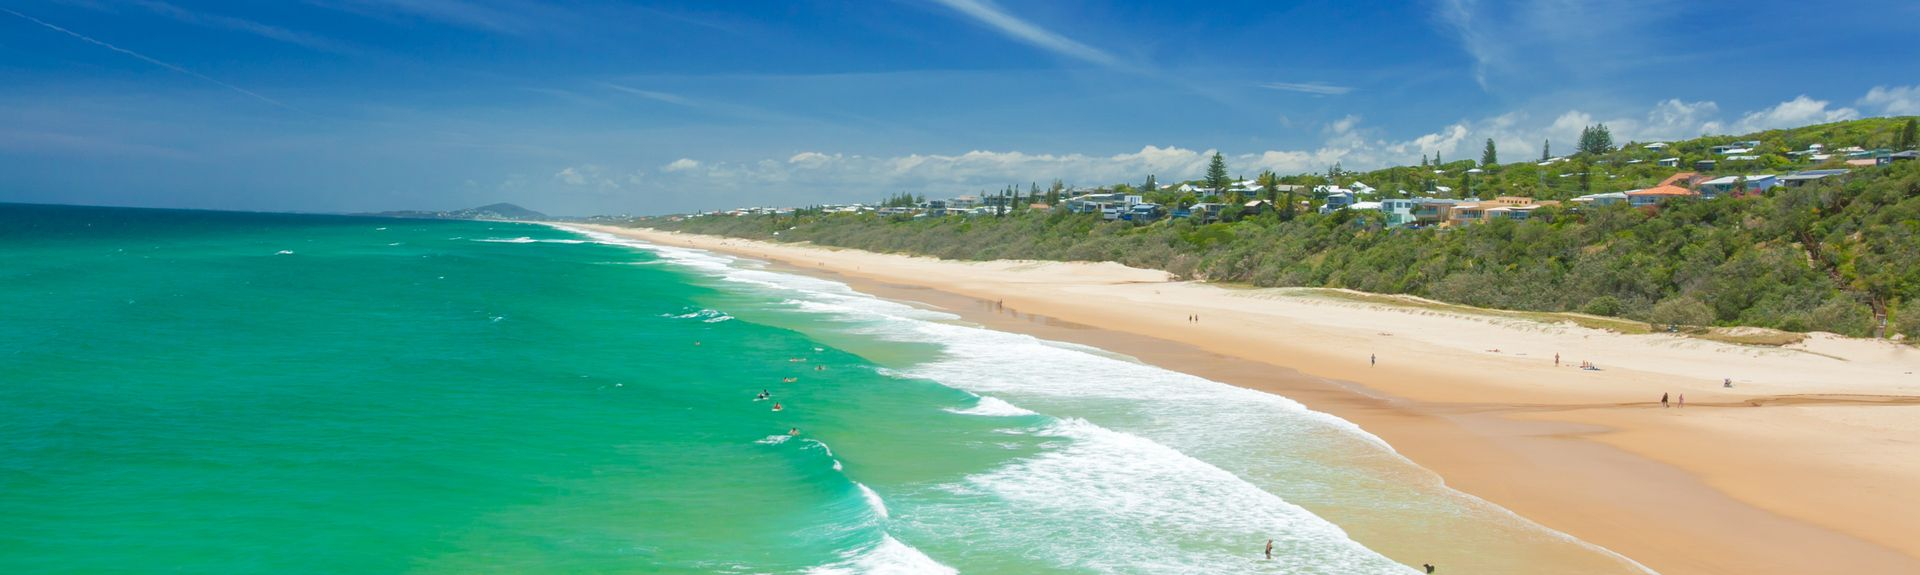 Sunshine Coast, Queensland, Australien